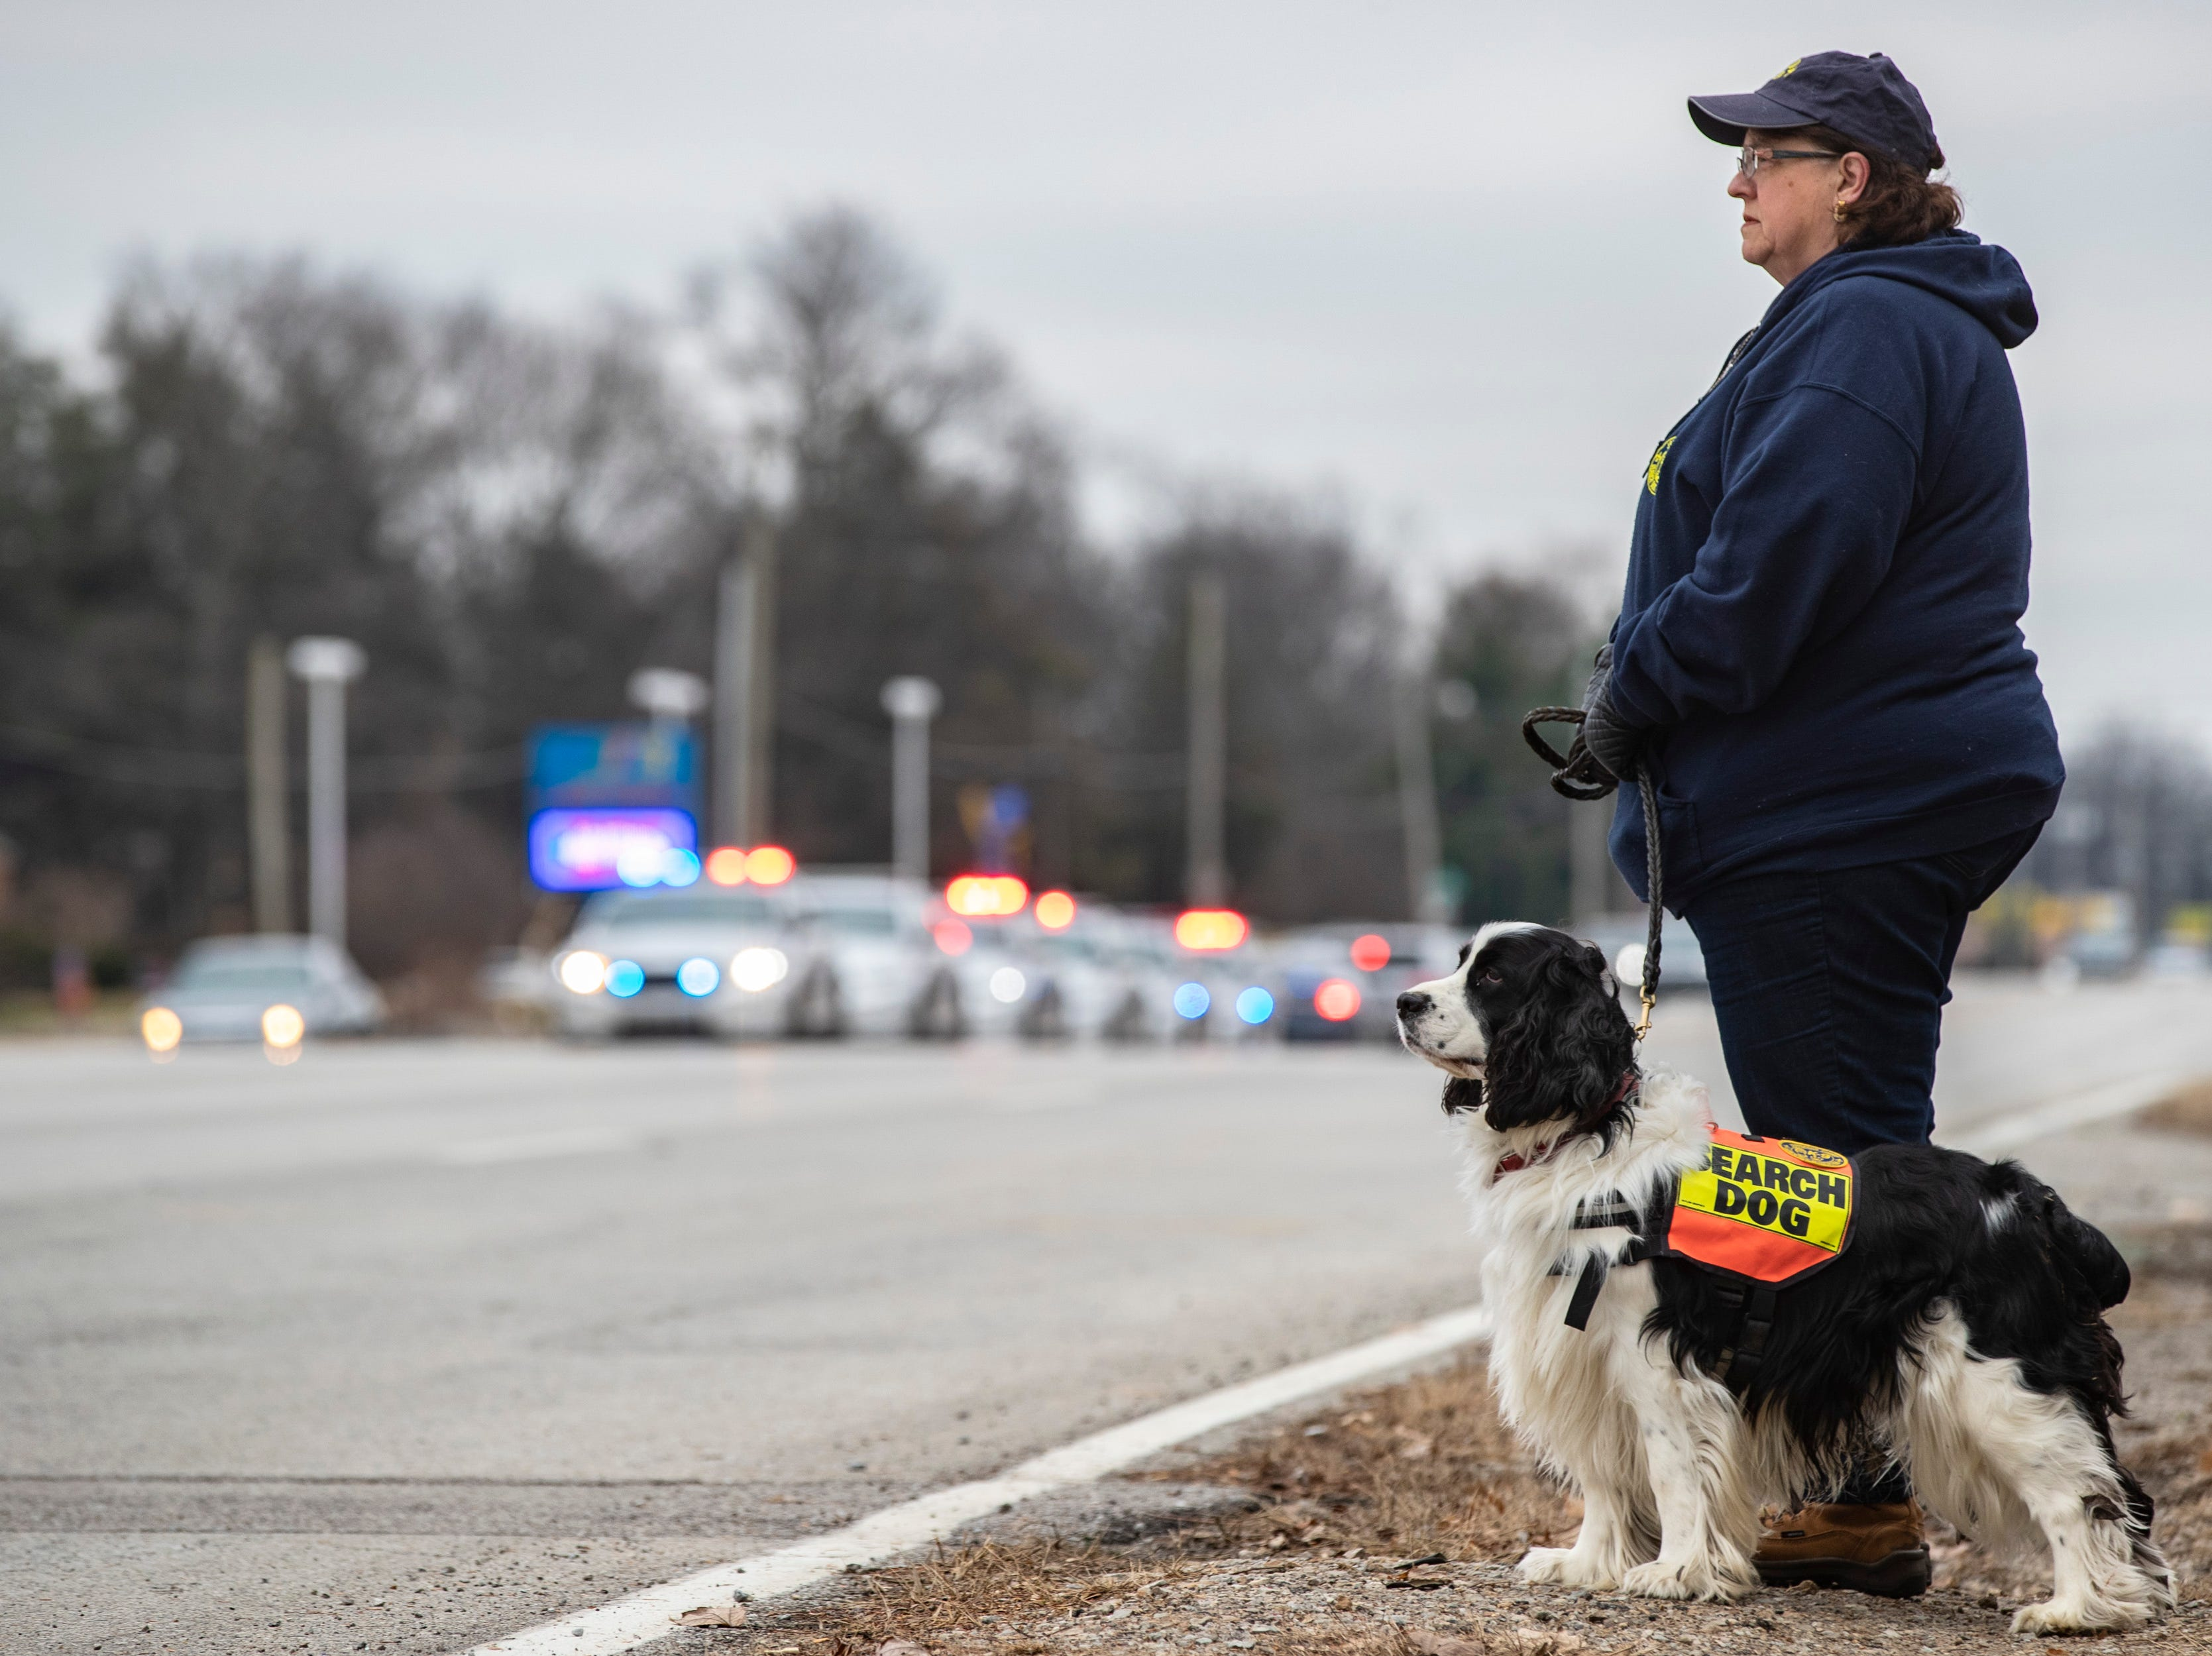 Aleta Eldridge with the Jefferson County Search Dog Association stands with Quincy awaiting the procession of Det. Deidre Mengedoht as it reaches the Resthaven Funeral Home on Bardstown Road in Louisville, Ky. December 29, 2018